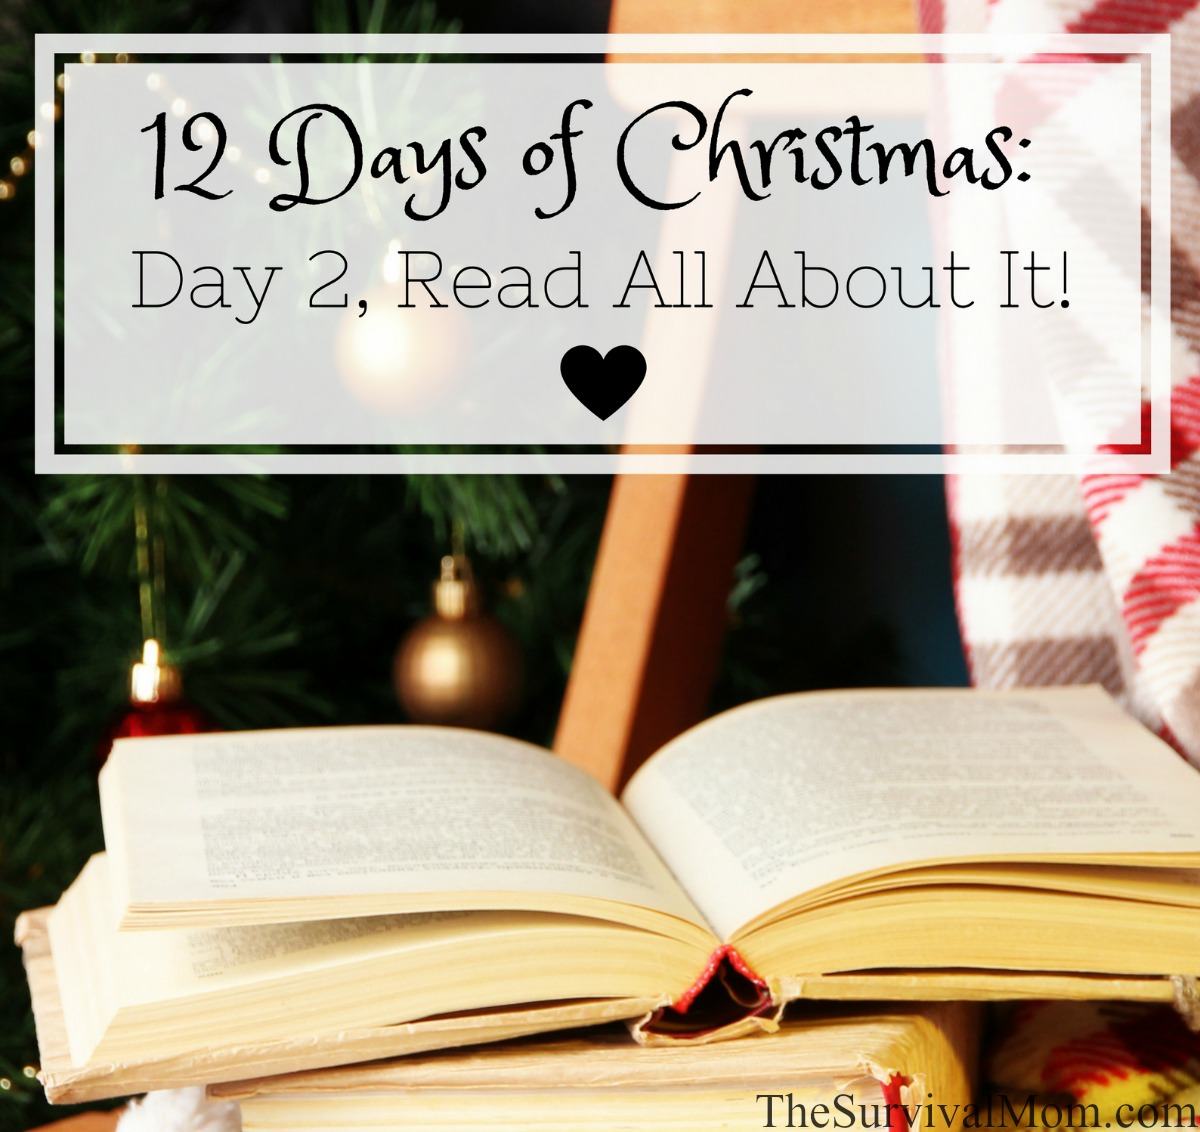 12 Days of Christmas Day 2 Read All About It via The Survival Mom